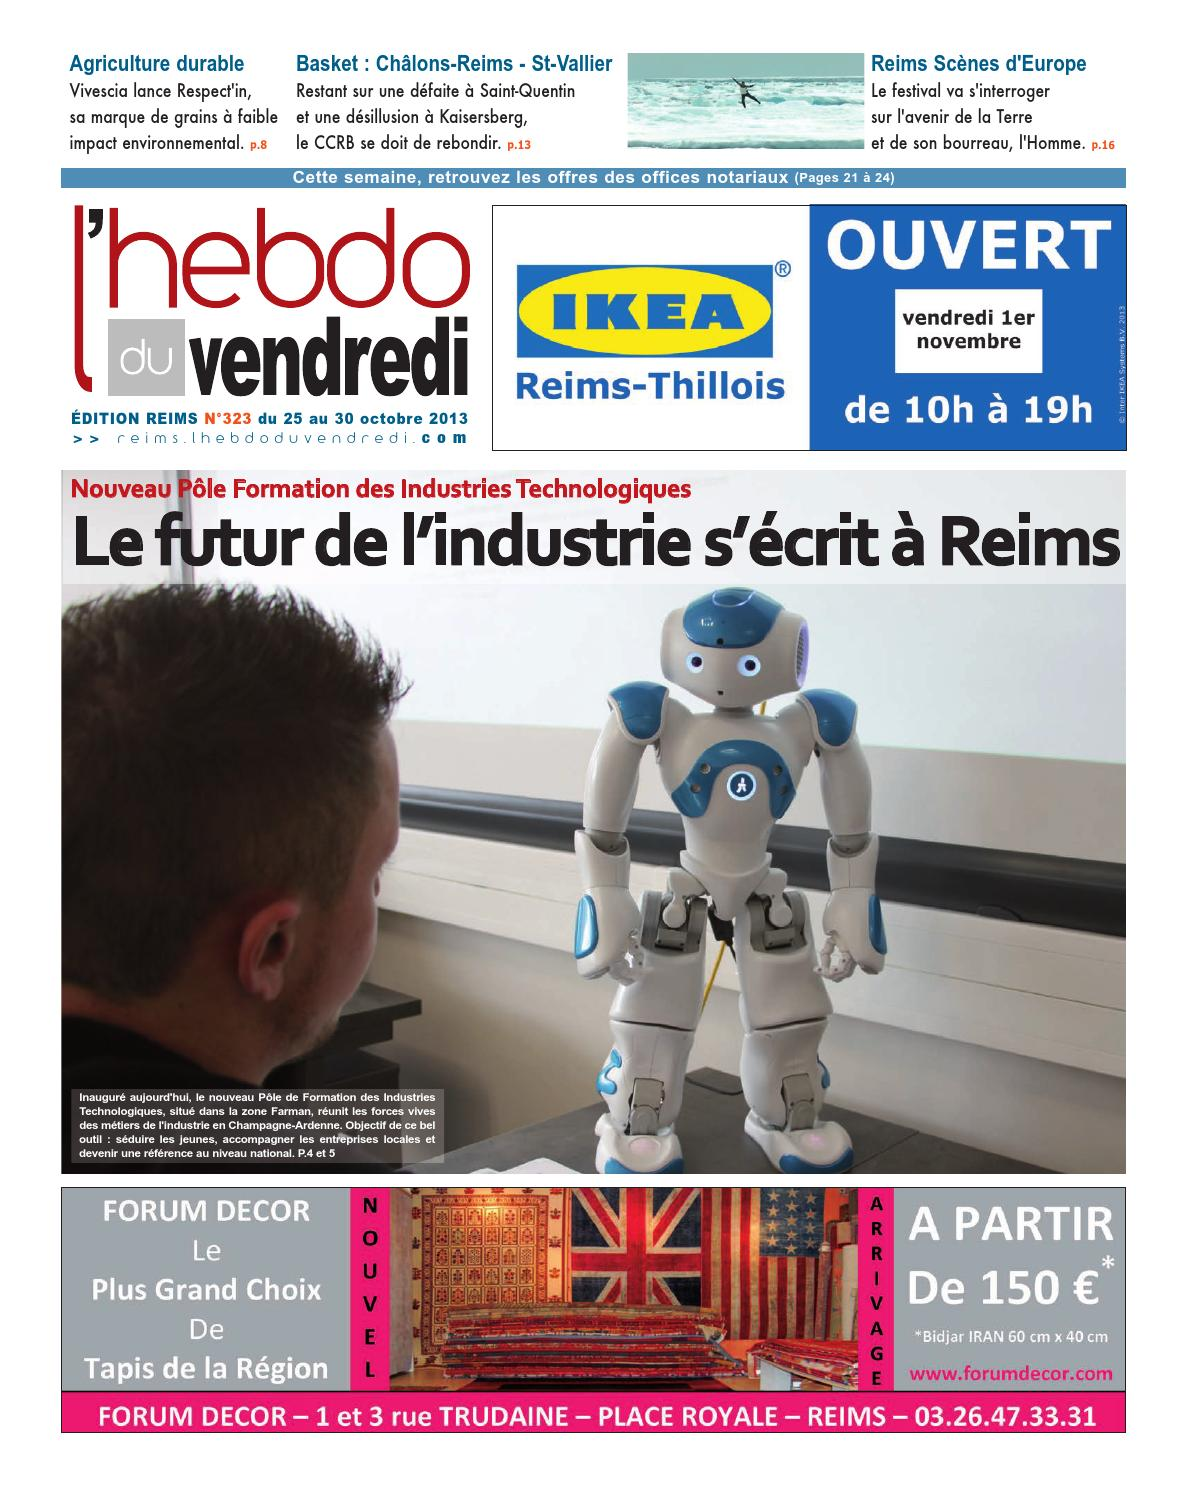 Lhebdo Du Vendredi Reims 323 By Kilkoa Issuu